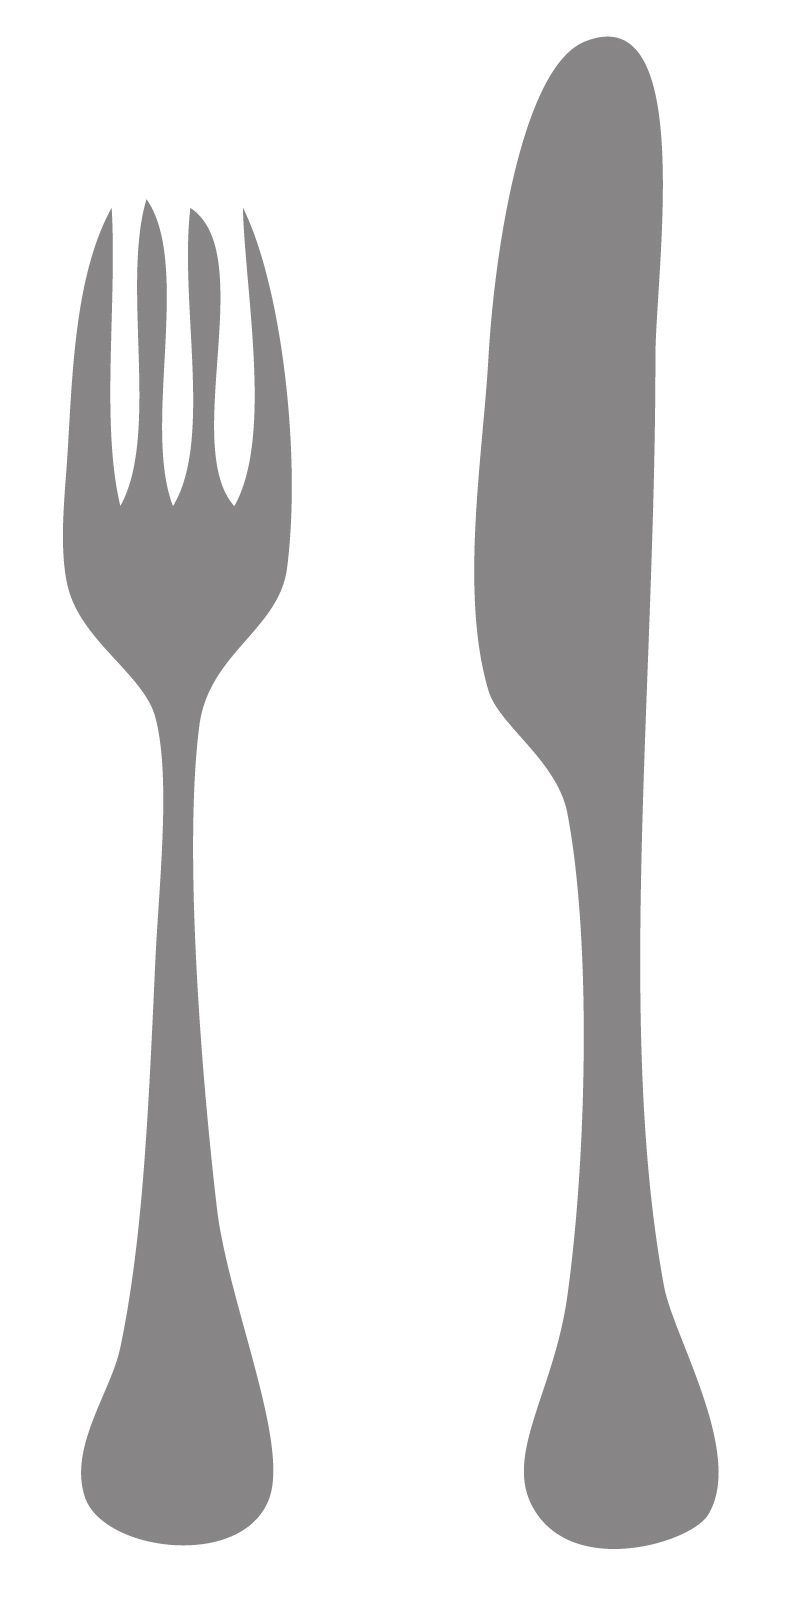 Knife And Fork Free Early Years Amp Primary Teaching